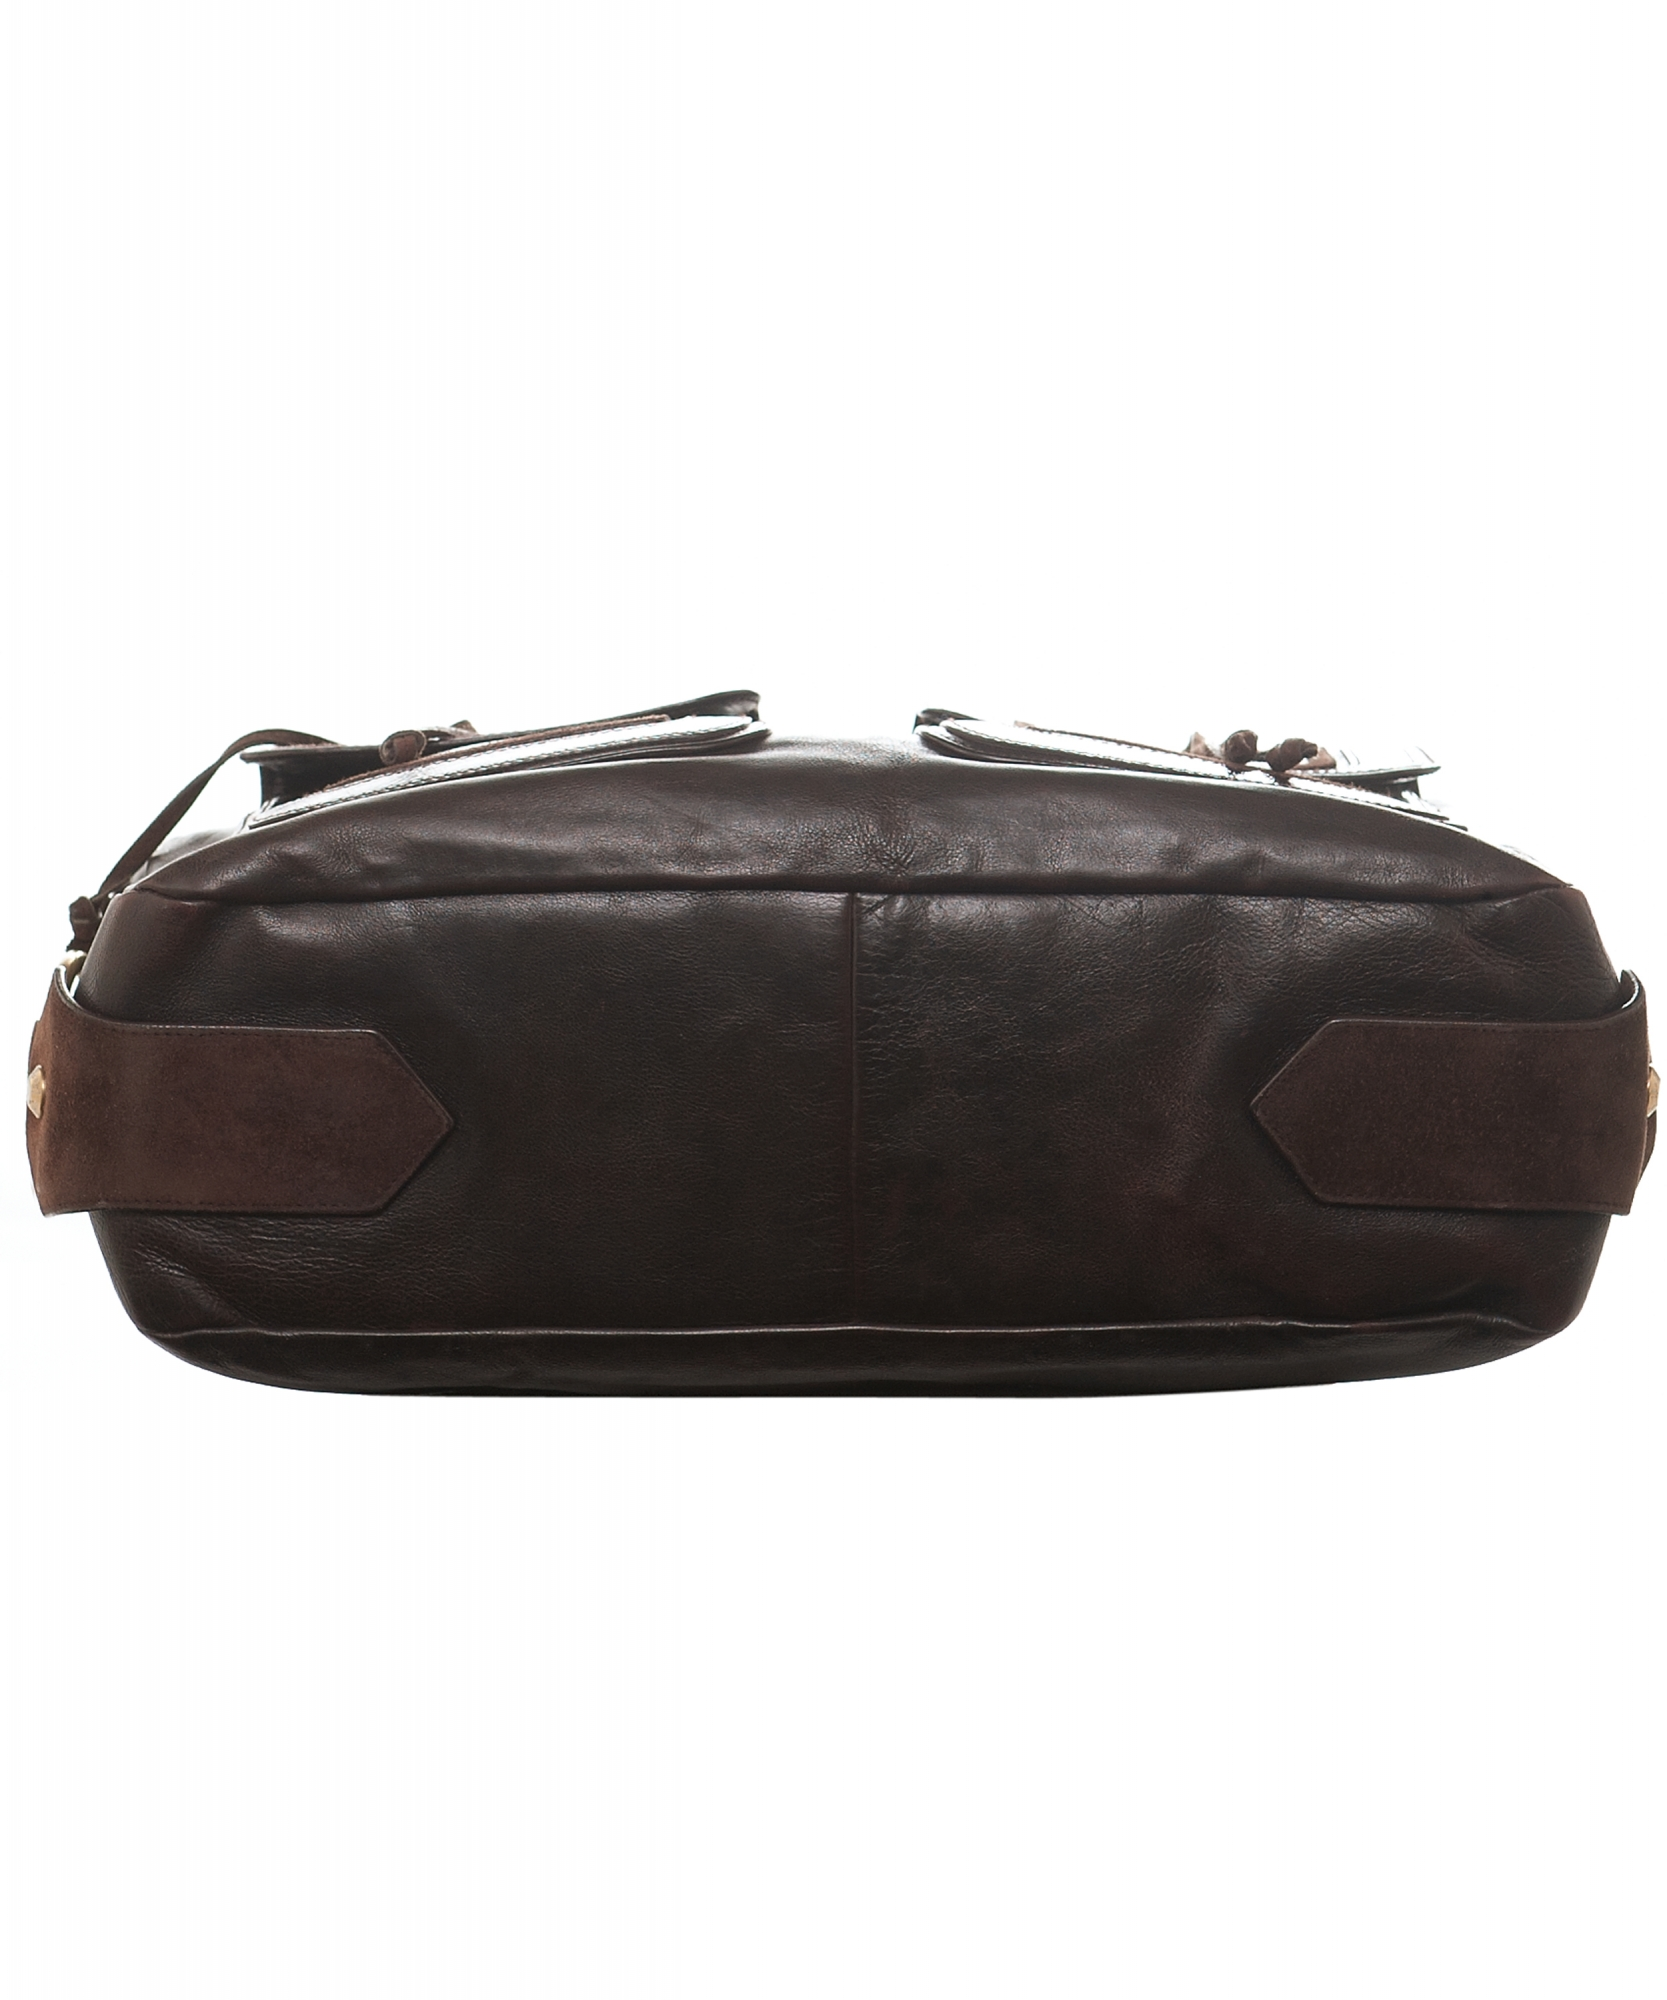 fa61b82bdf ... Yves Saint Laurent 'Rive Gauche' Brown Leather Shoulder Bag. Touch to  zoom